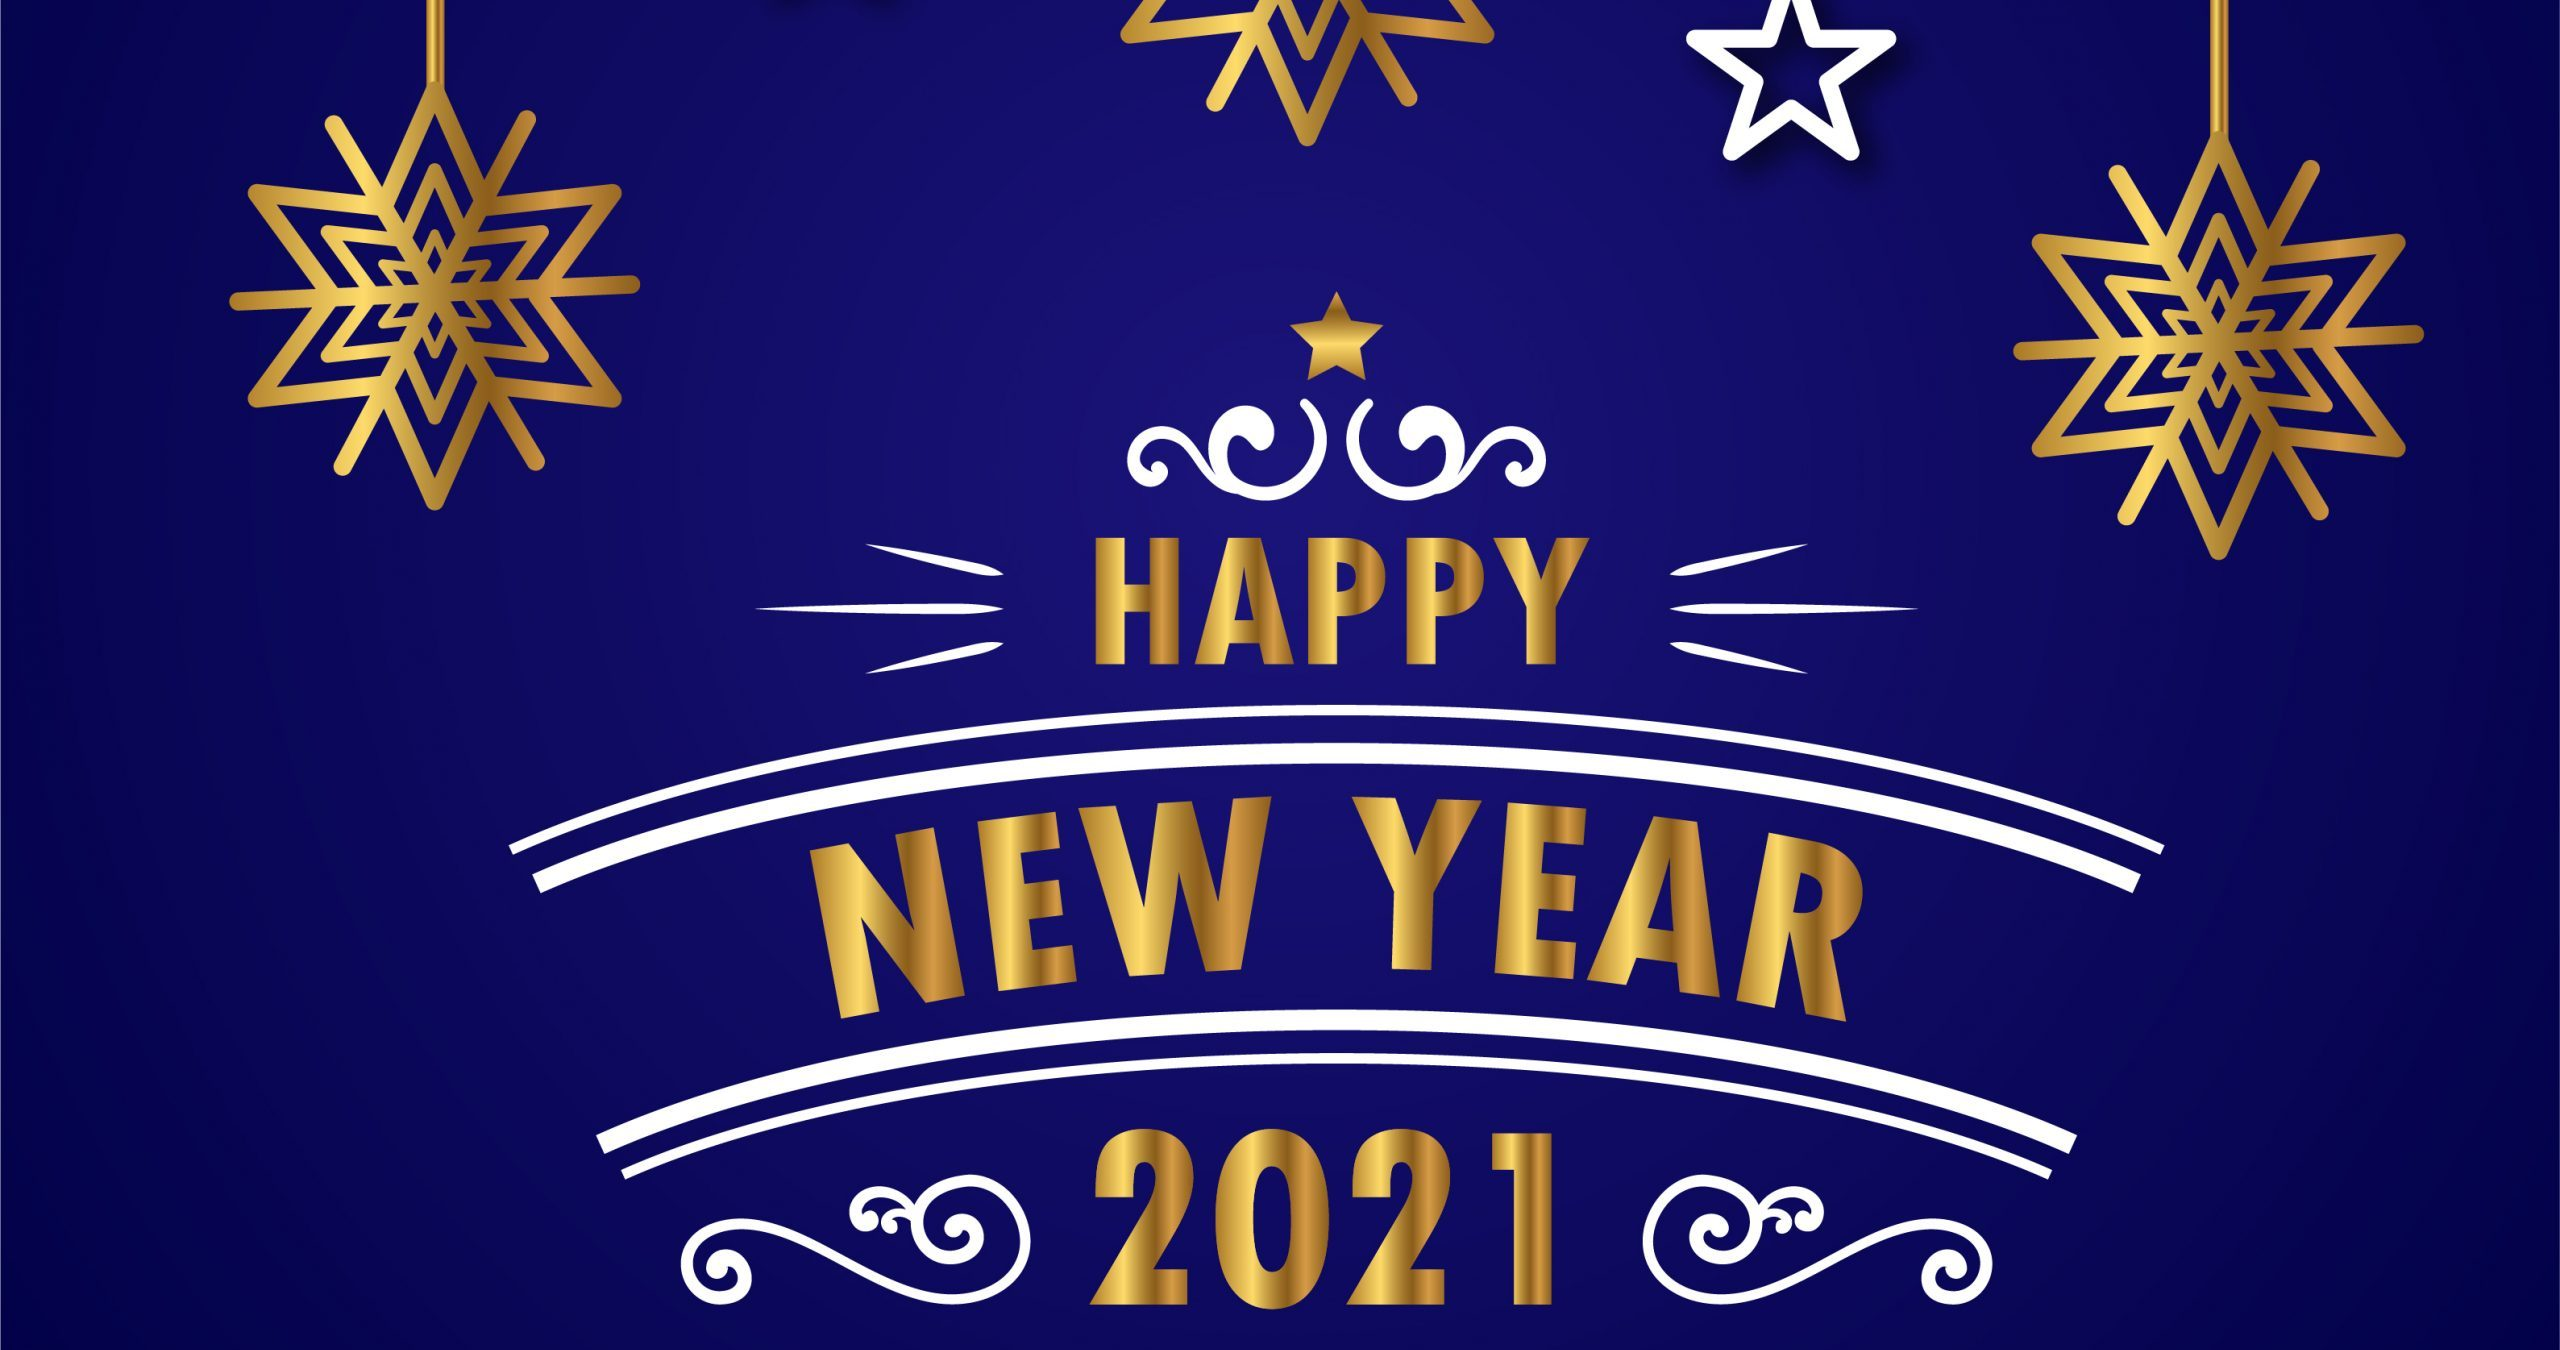 January 2021: Welcome to a New & Exciting 2021